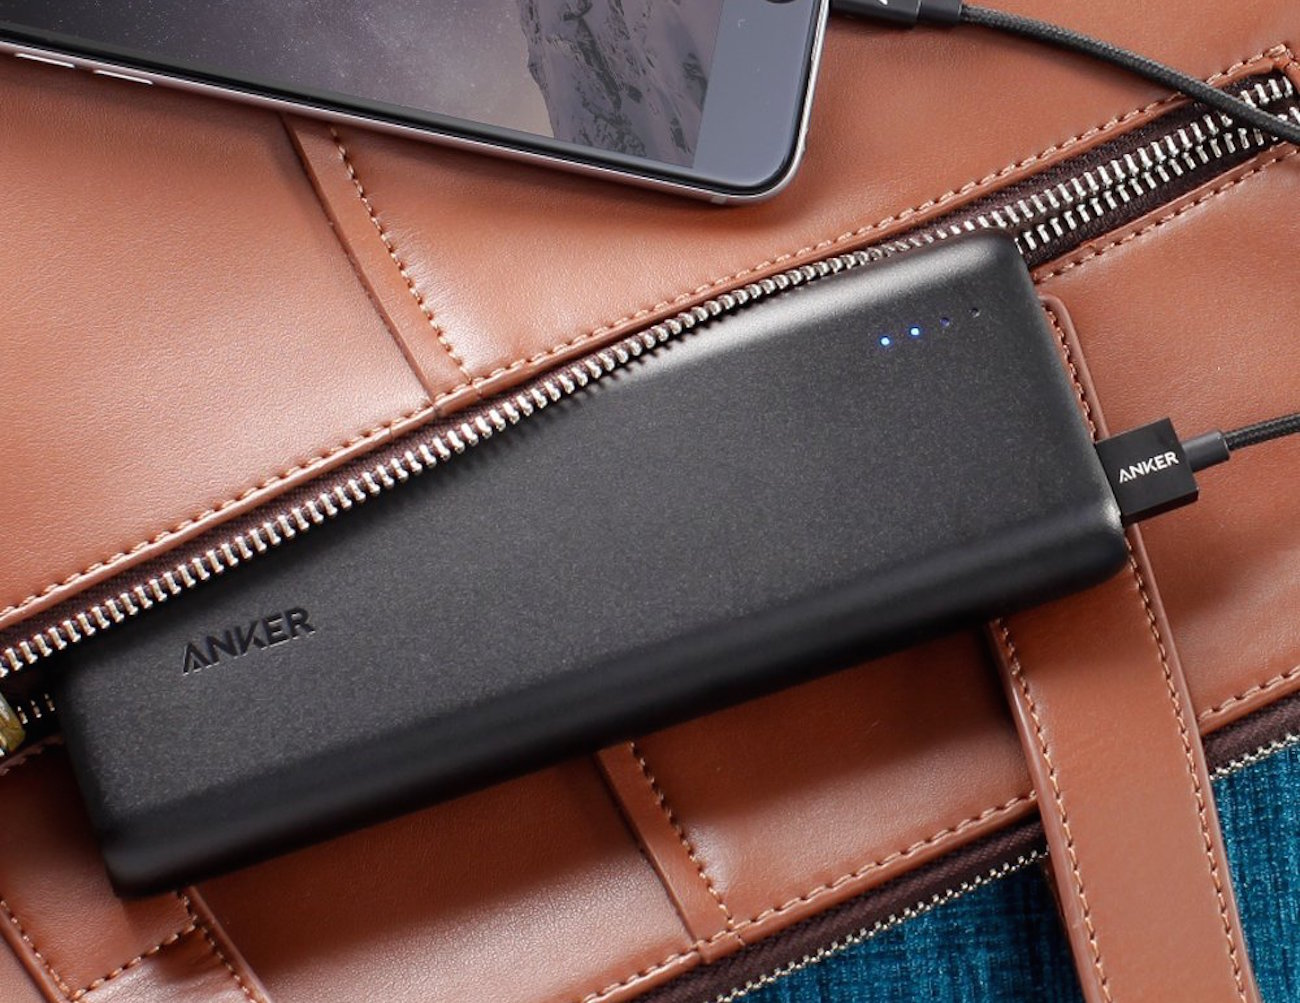 Anker-PowerCore-20100-Ultra-High-Capacity-Power-Bank